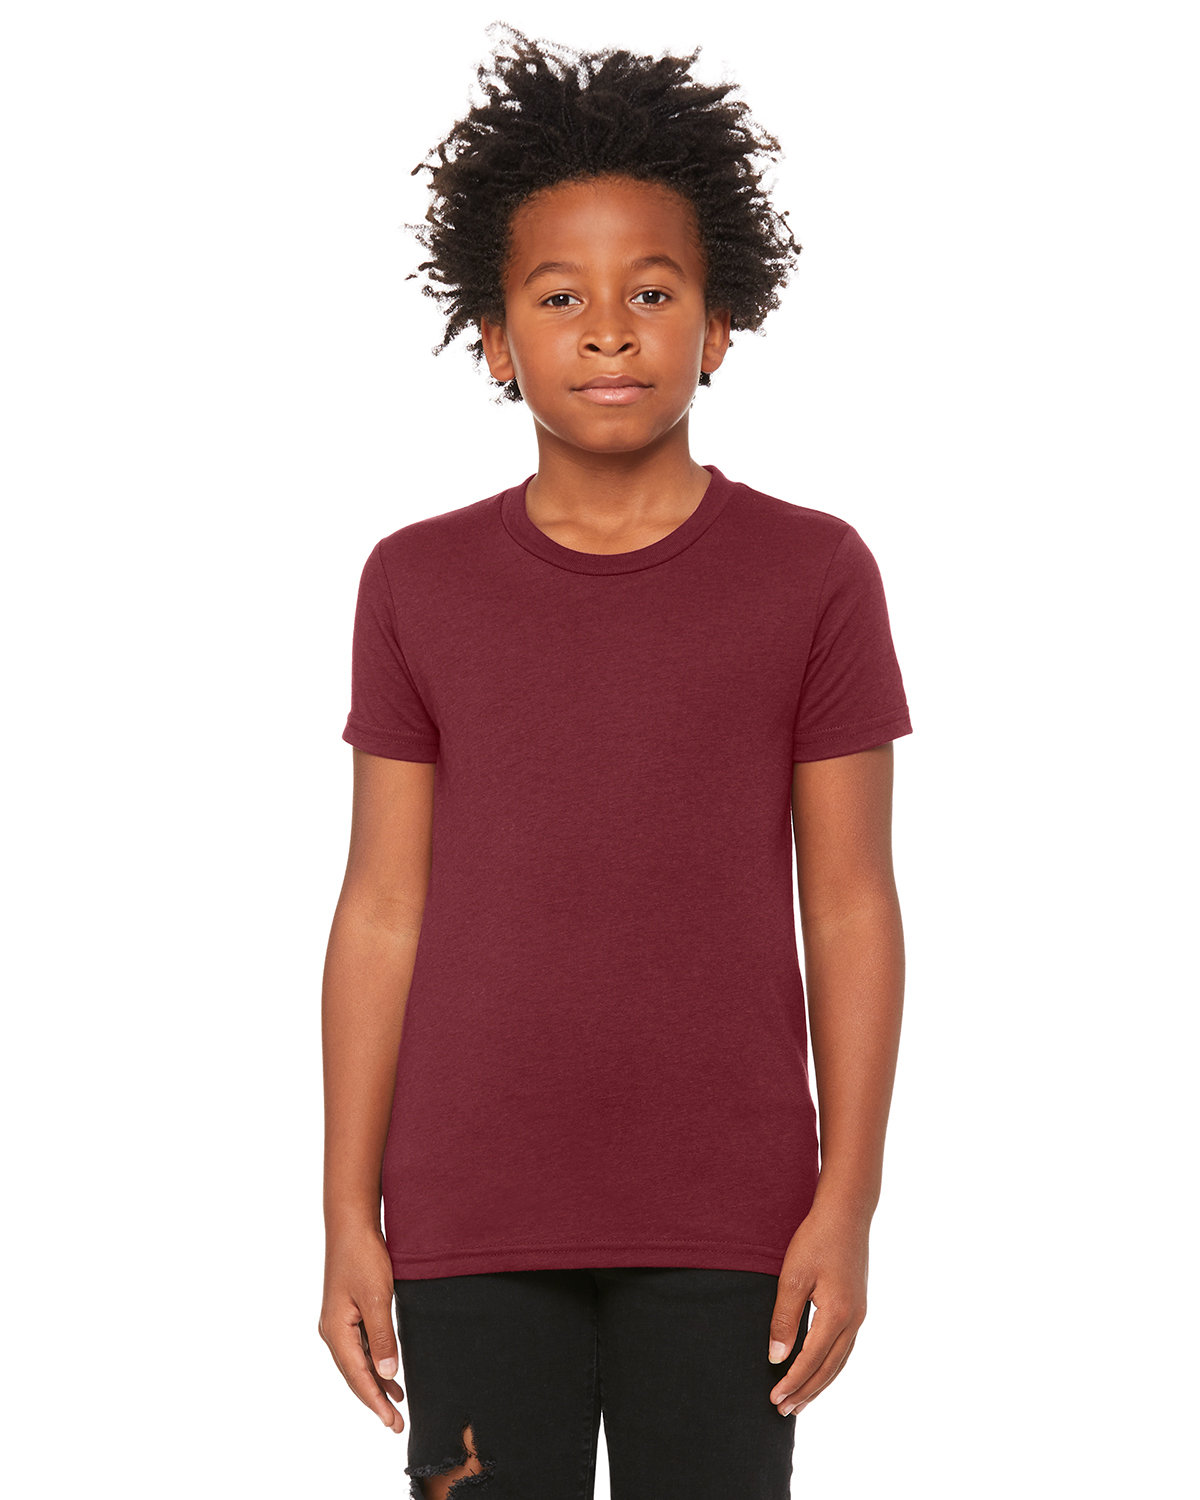 Bella + Canvas Youth Triblend Short-Sleeve T-Shirt MAROON TRIBLEND